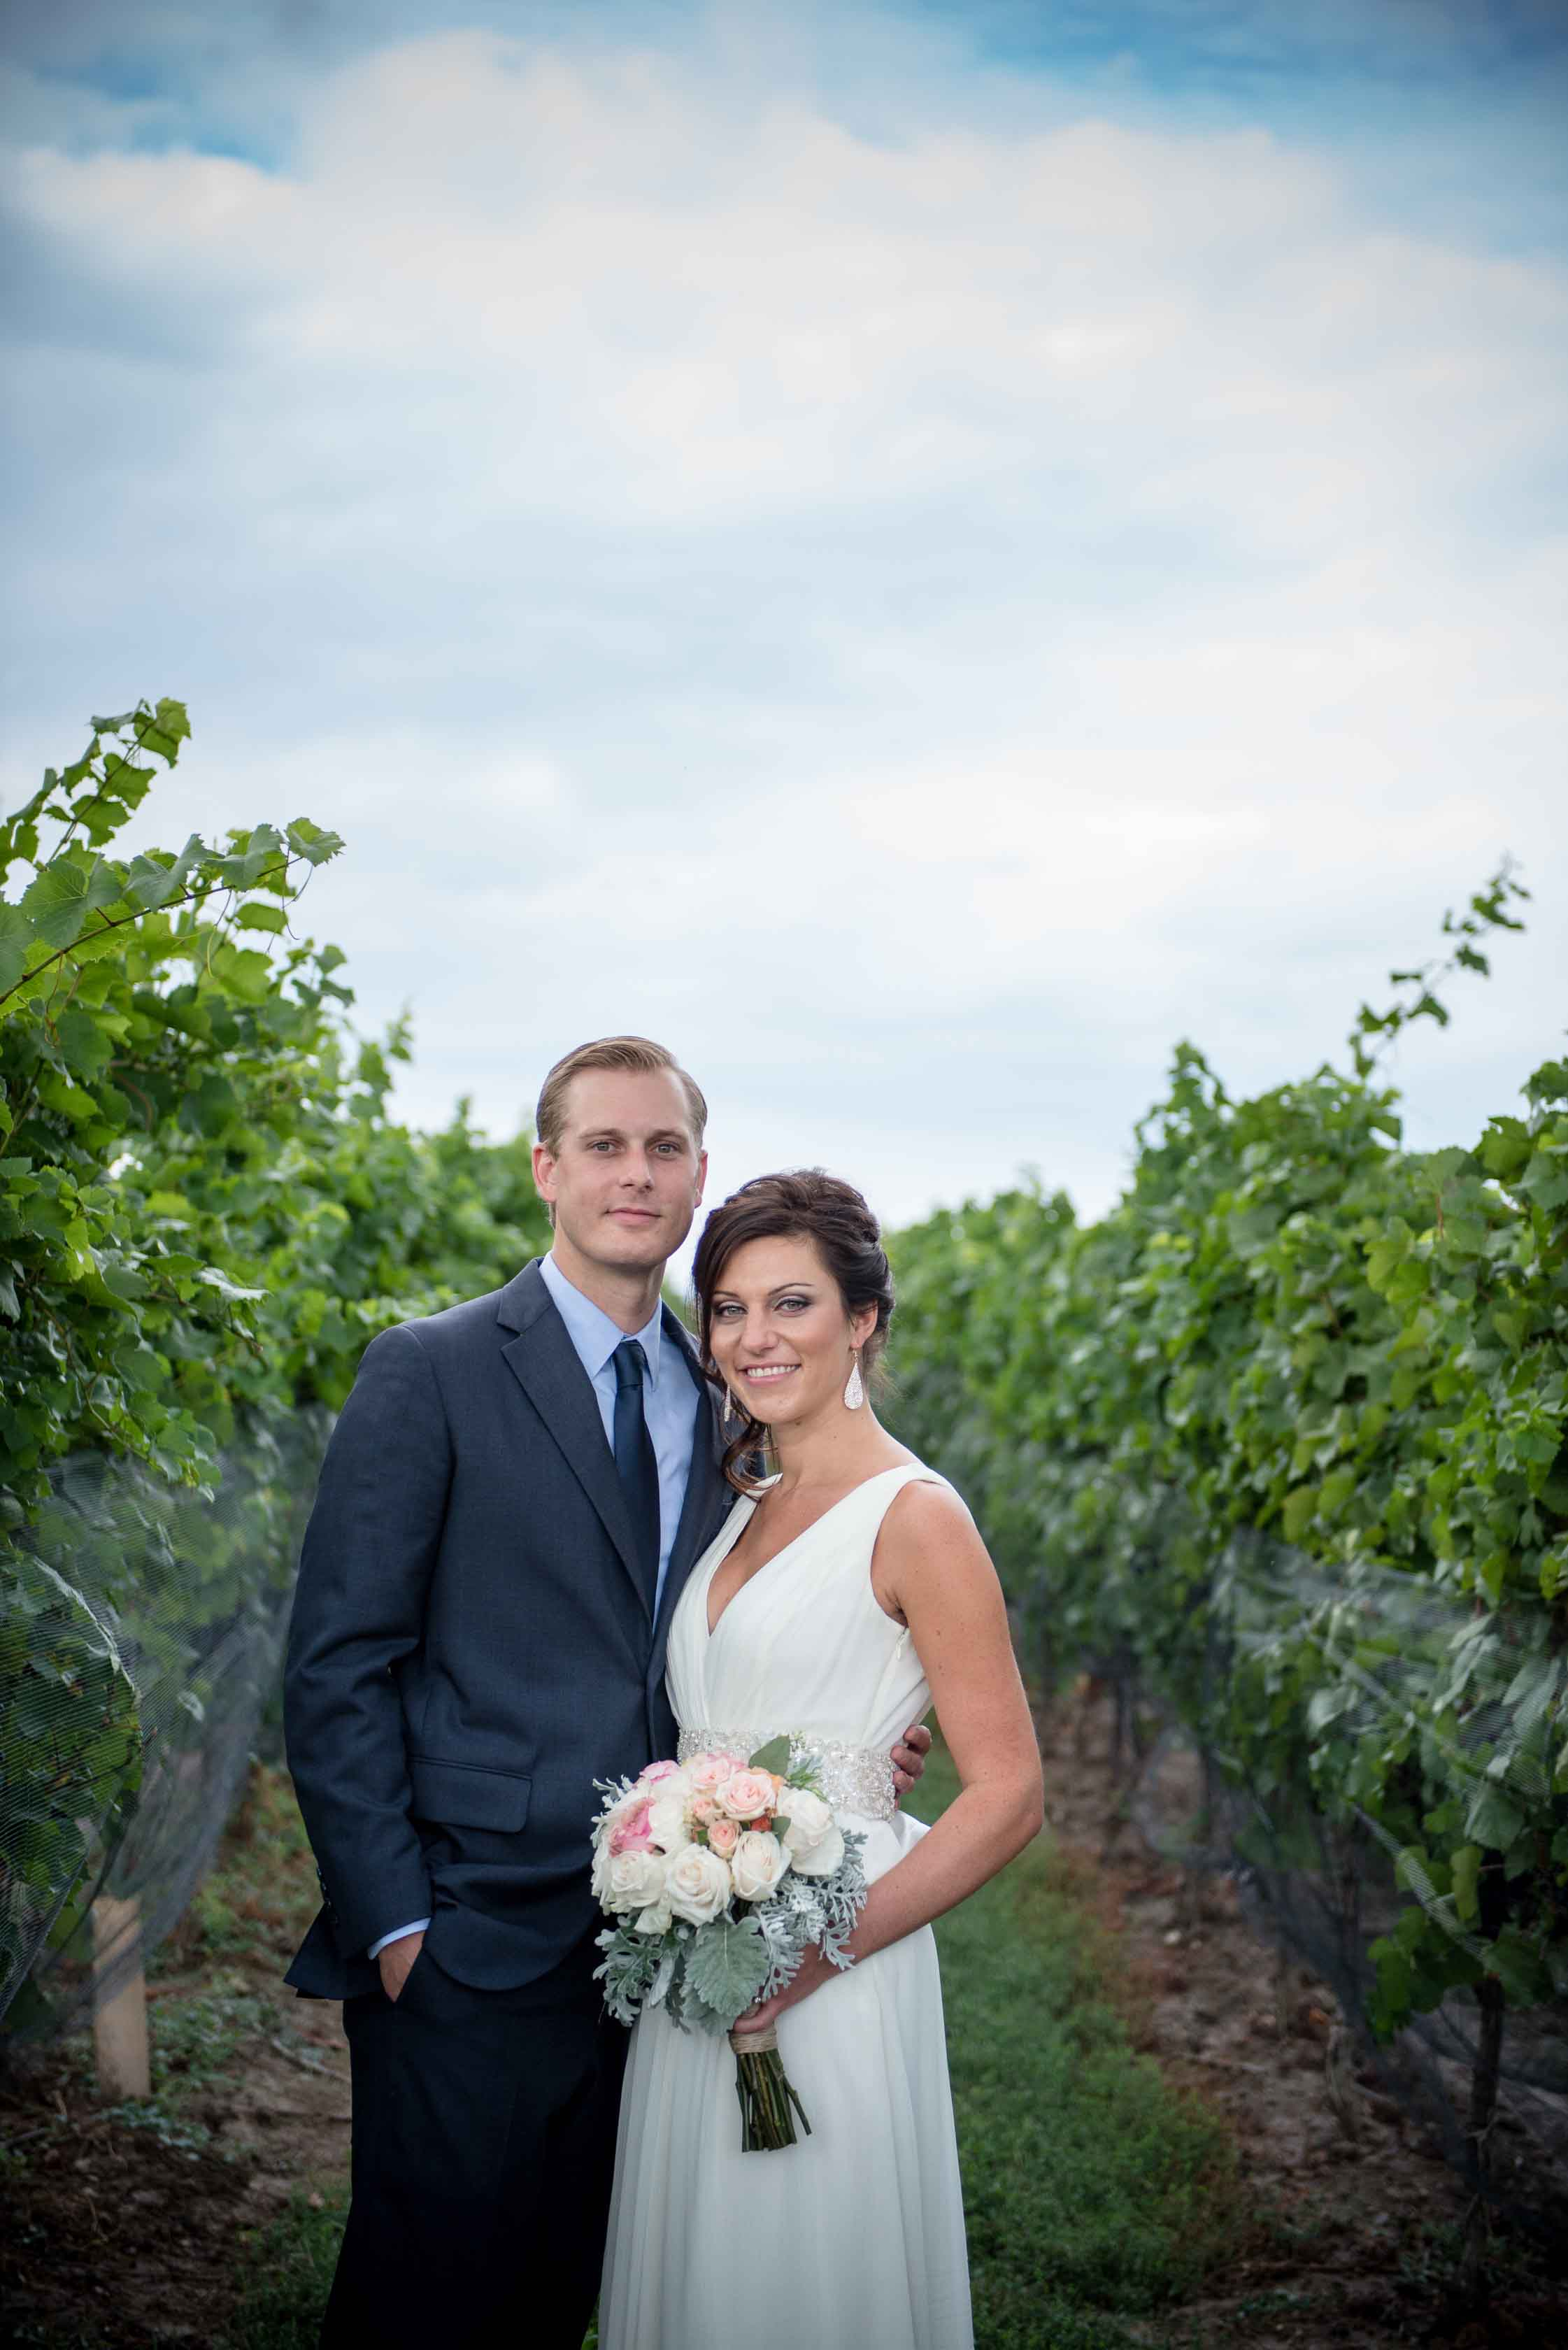 Sher and Brian Wedding by Sugar Photo Studios (13 of 322).jpg